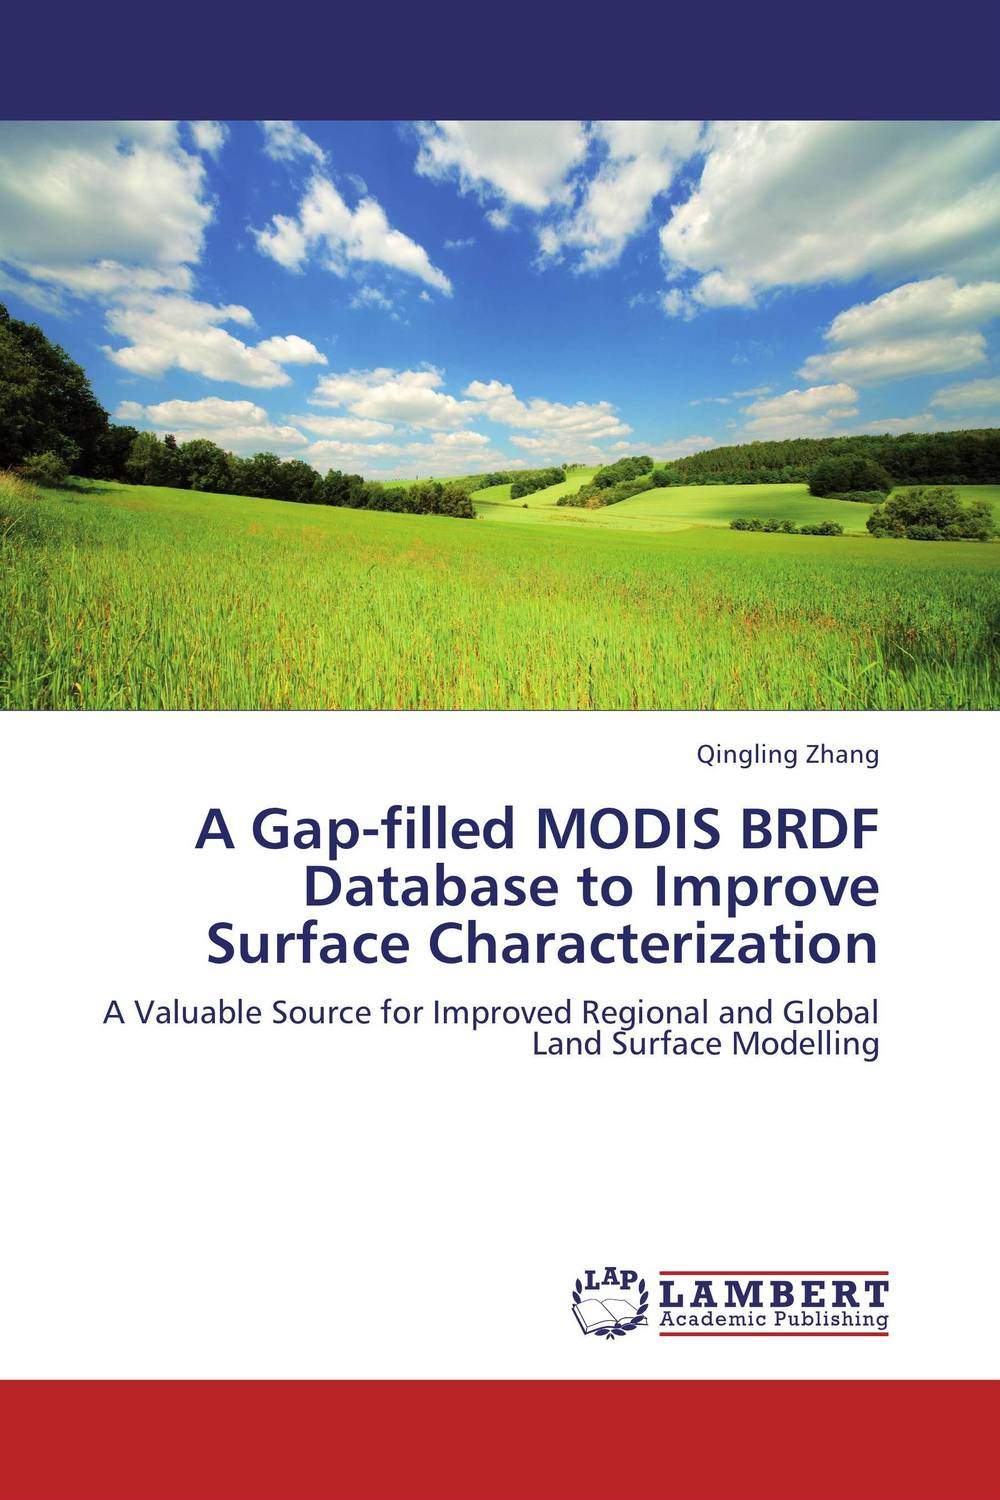 A Gap-filled MODIS BRDF Database to Improve Surface Characterization комплект боди 3 шт gap gap ga020eksyb47